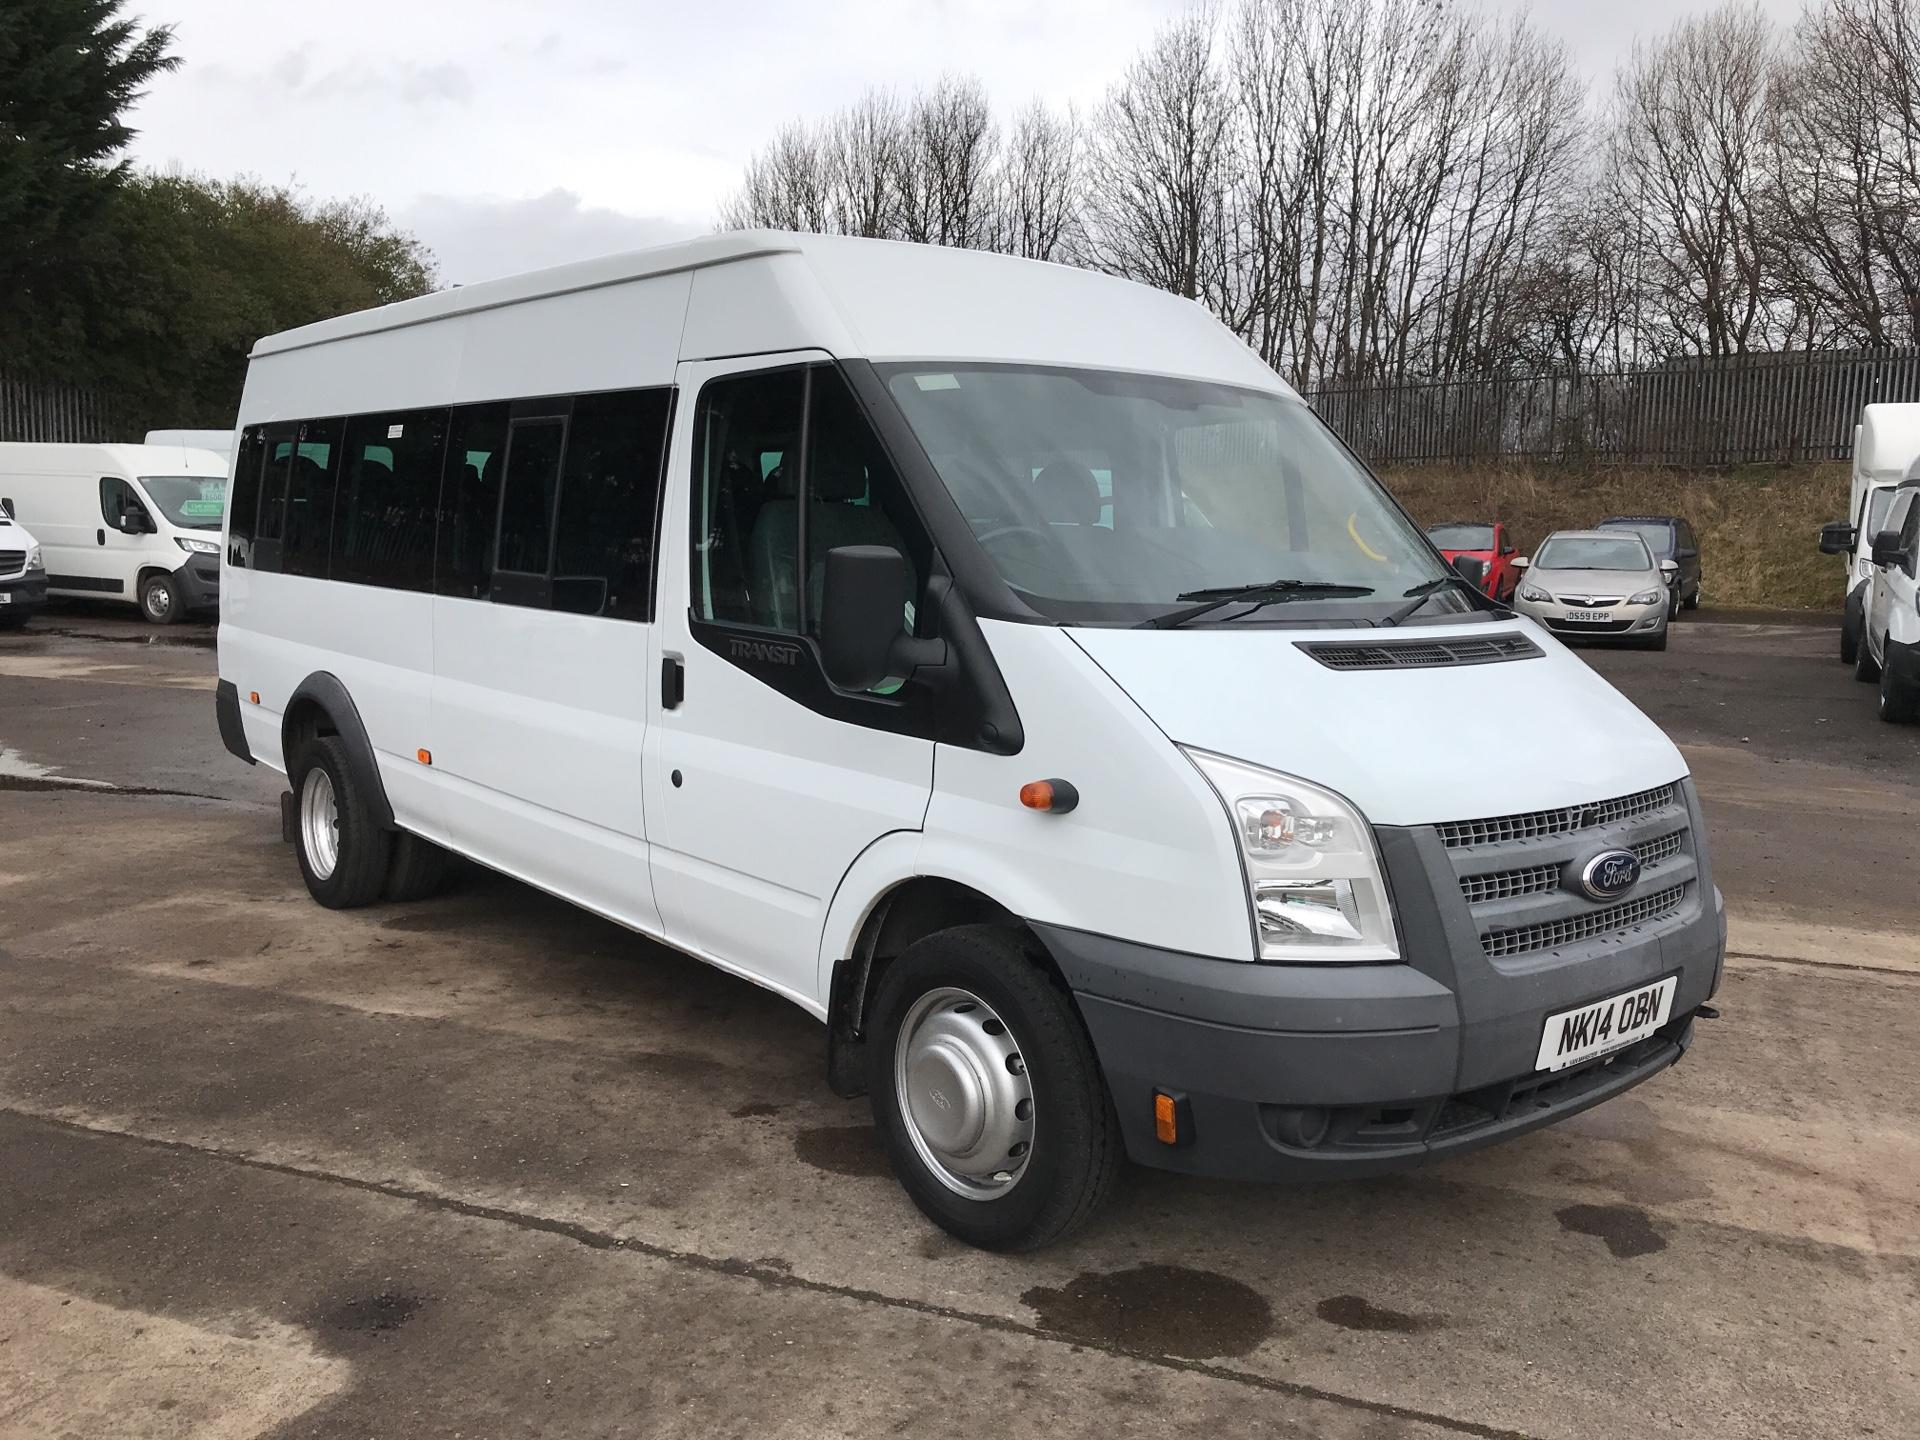 2014 Ford Transit T430 MEDIUM ROOF MINIBUS 17 SEATER 135PS EURO 5 (NK14OBN)